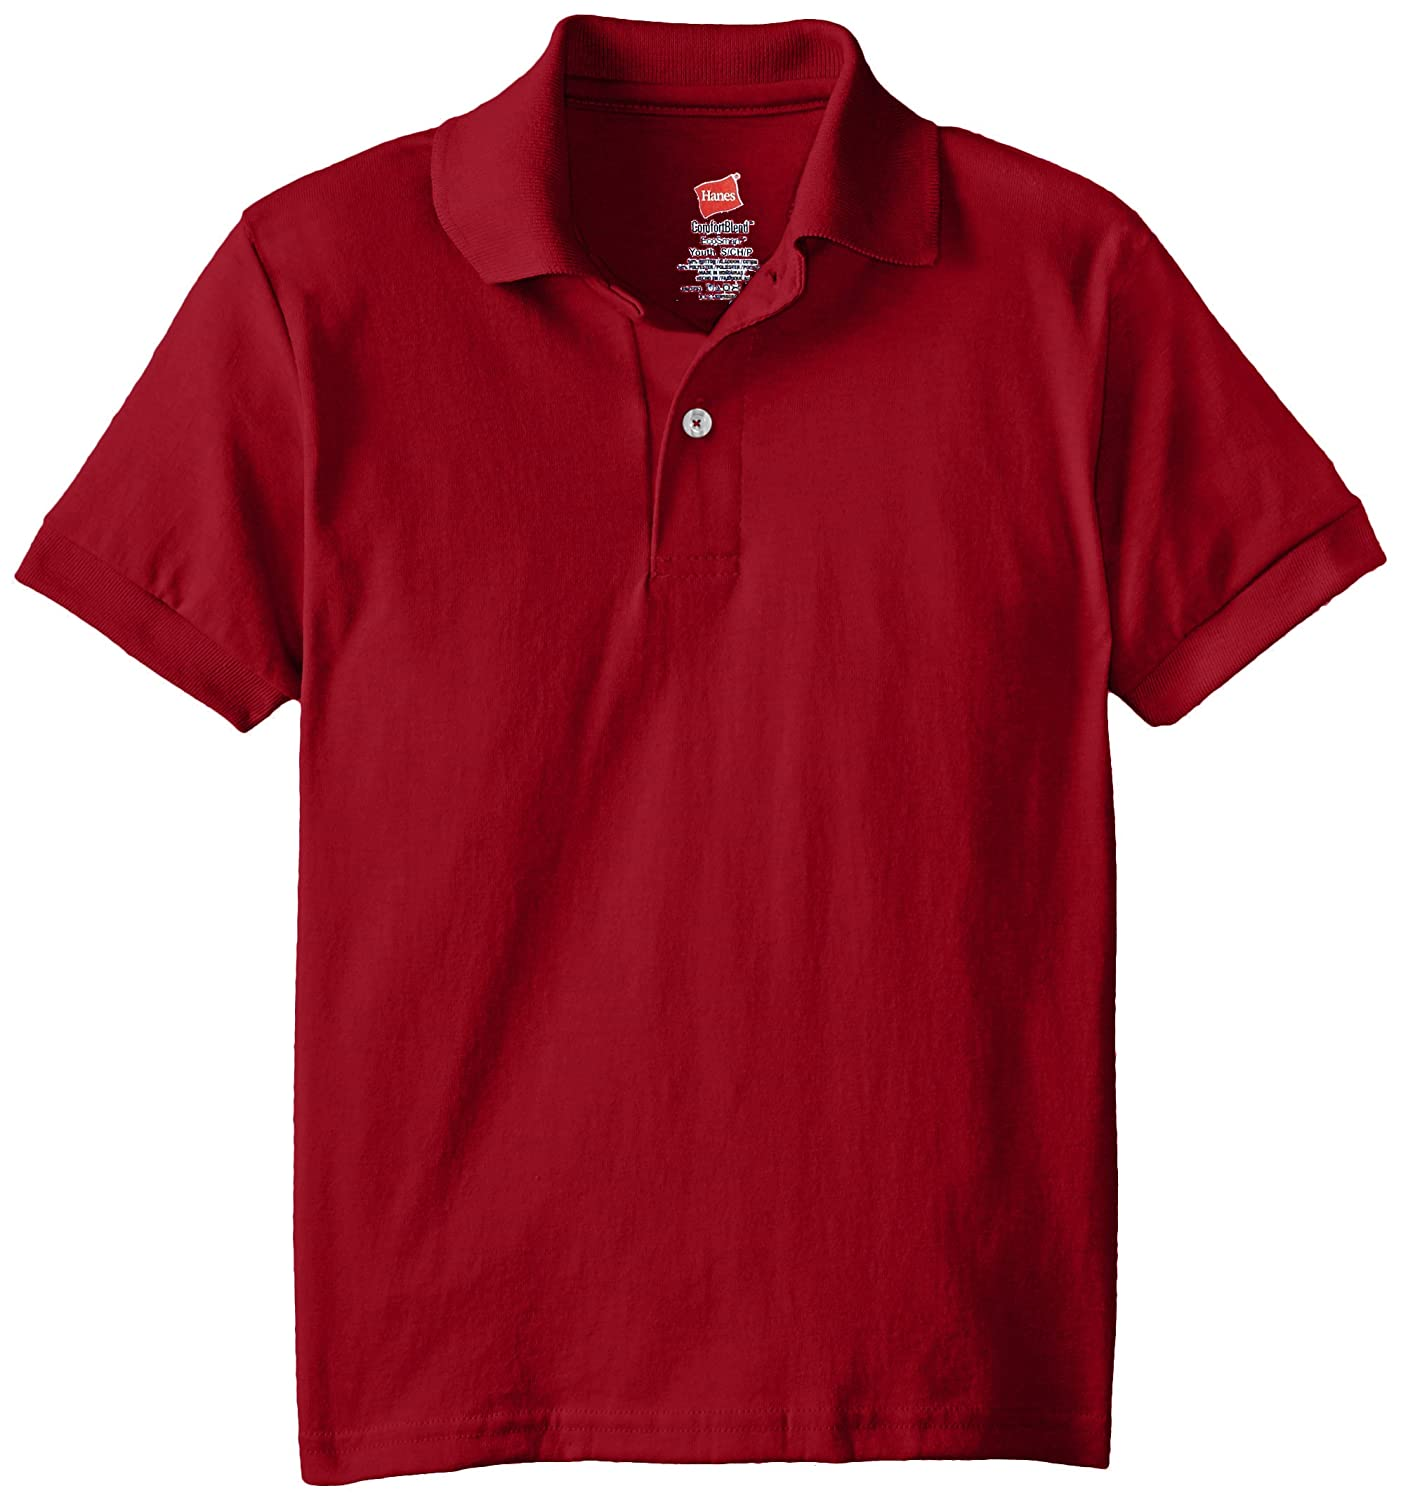 Hanes Big Boys Short Sleeve Eco Smart Jersey Polo Hanes Boys 8-20 O054Y